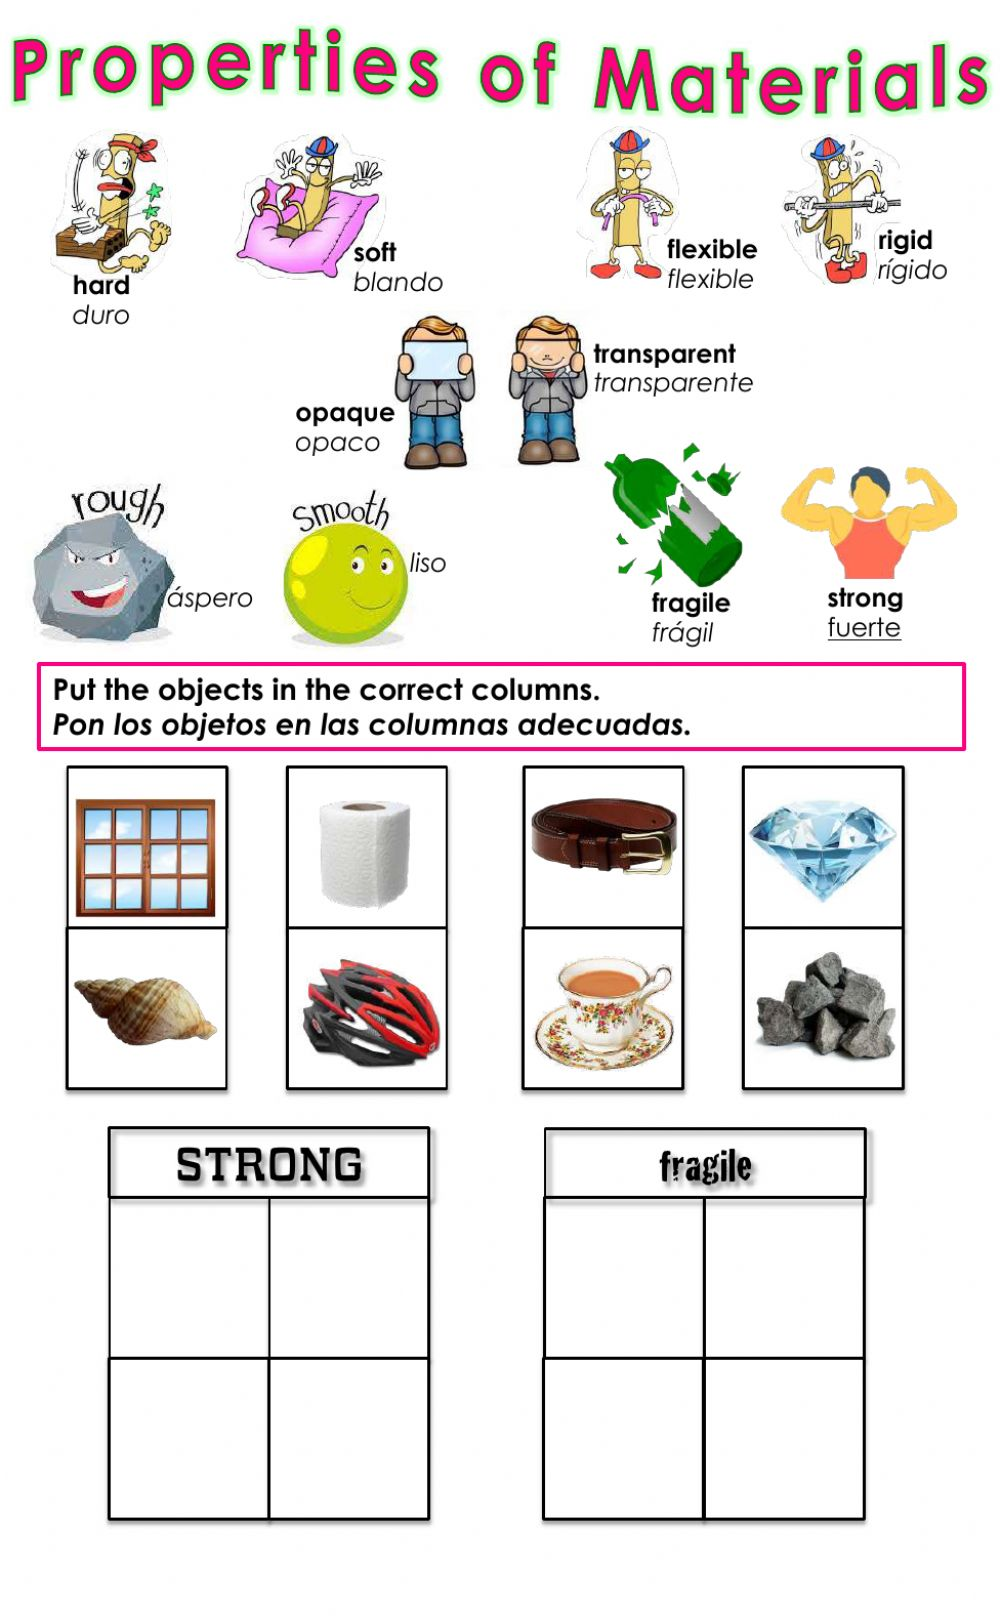 hight resolution of Properties of Materials - Strong or Fragile? worksheet